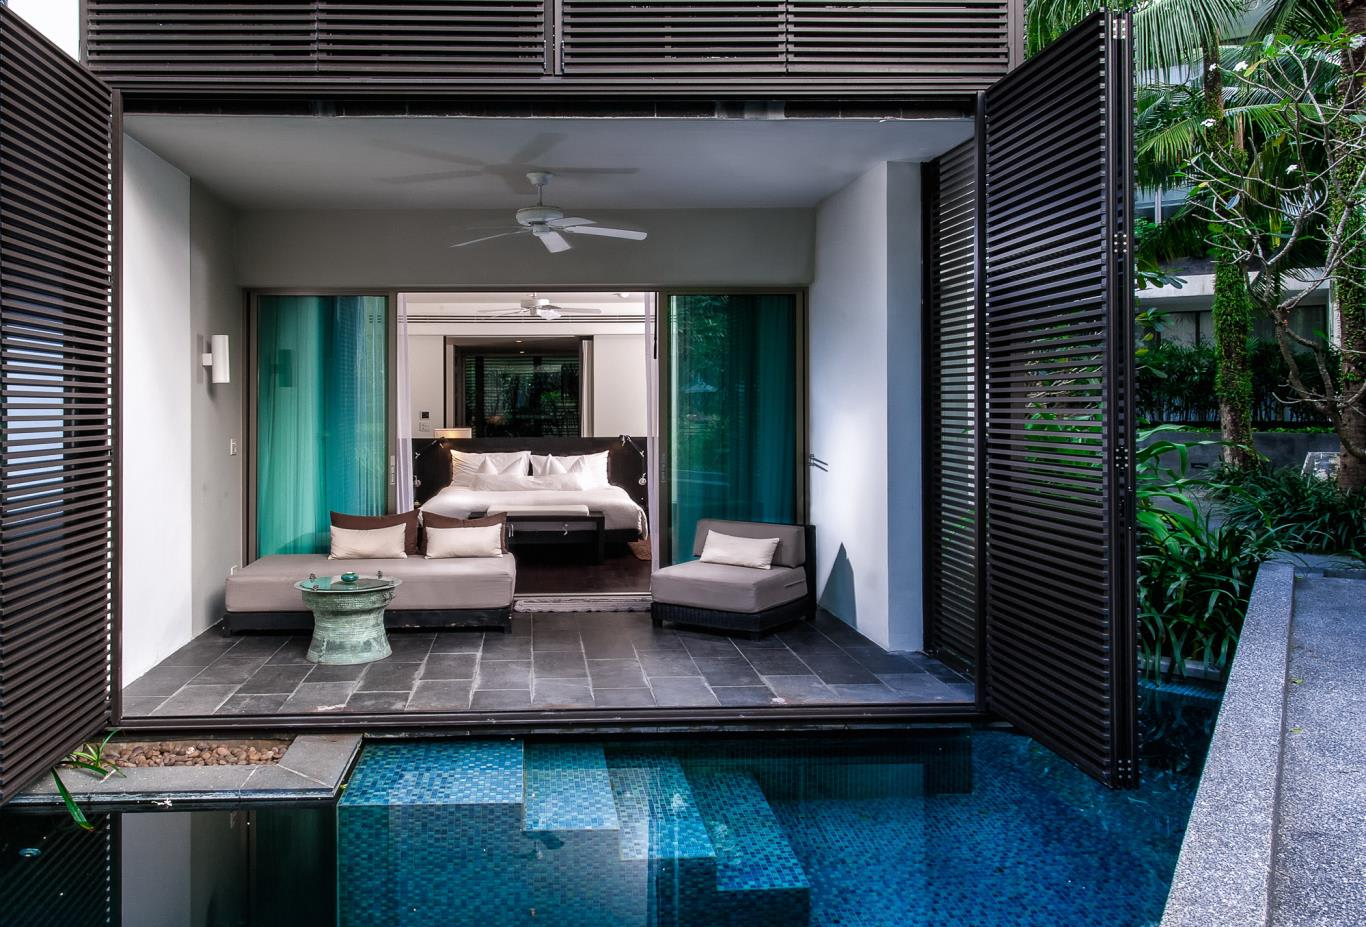 Grand Deluxe Lagoon Pool Room